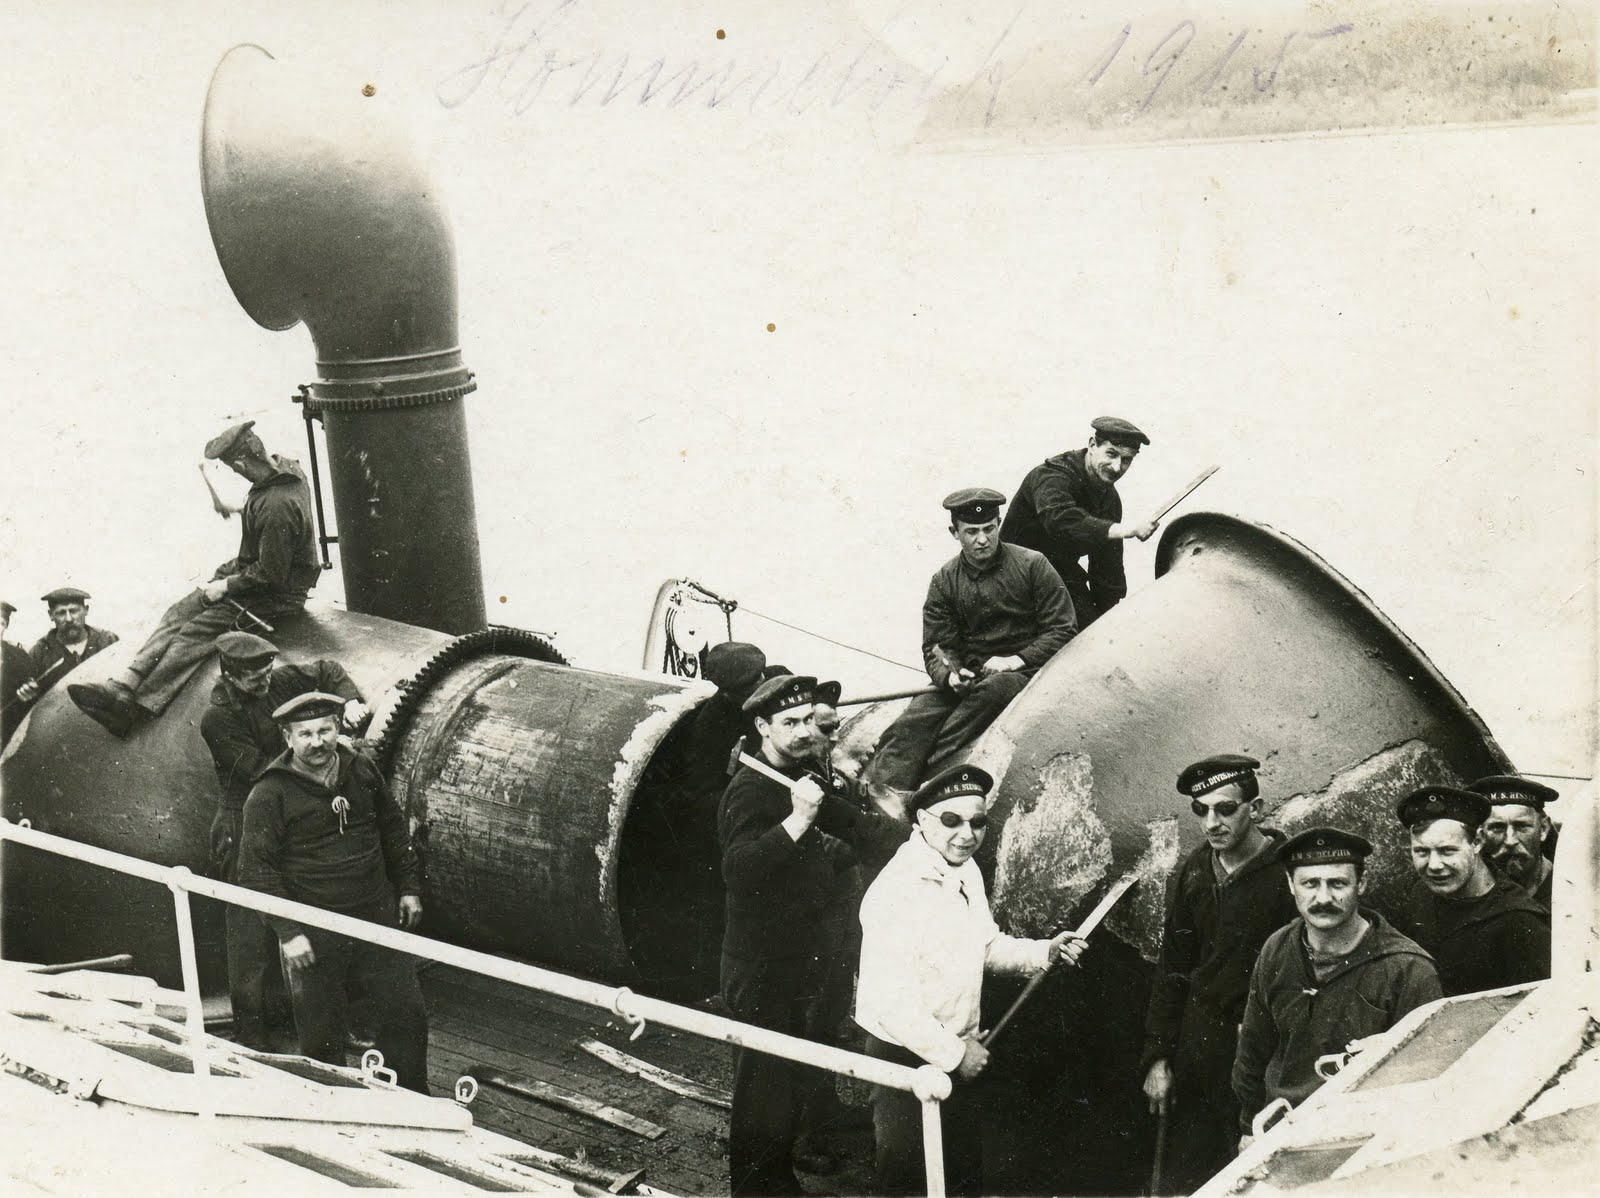 Photograph of S.M. Berlin and the crew